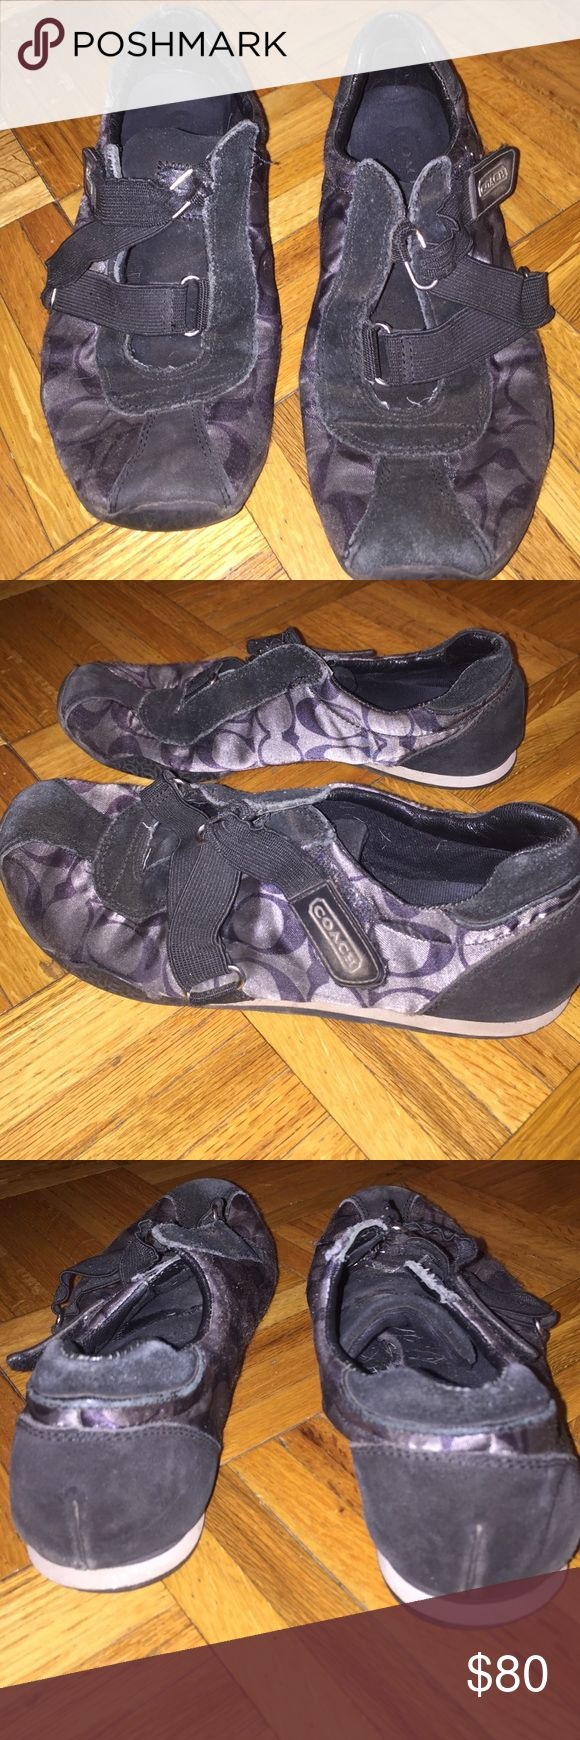 Authentic coach velcro sneakers Authentic used velcro black, grey and white sneakers. A little wear and tear, very comfortable sneakers 👟 Coach Shoes Sneakers